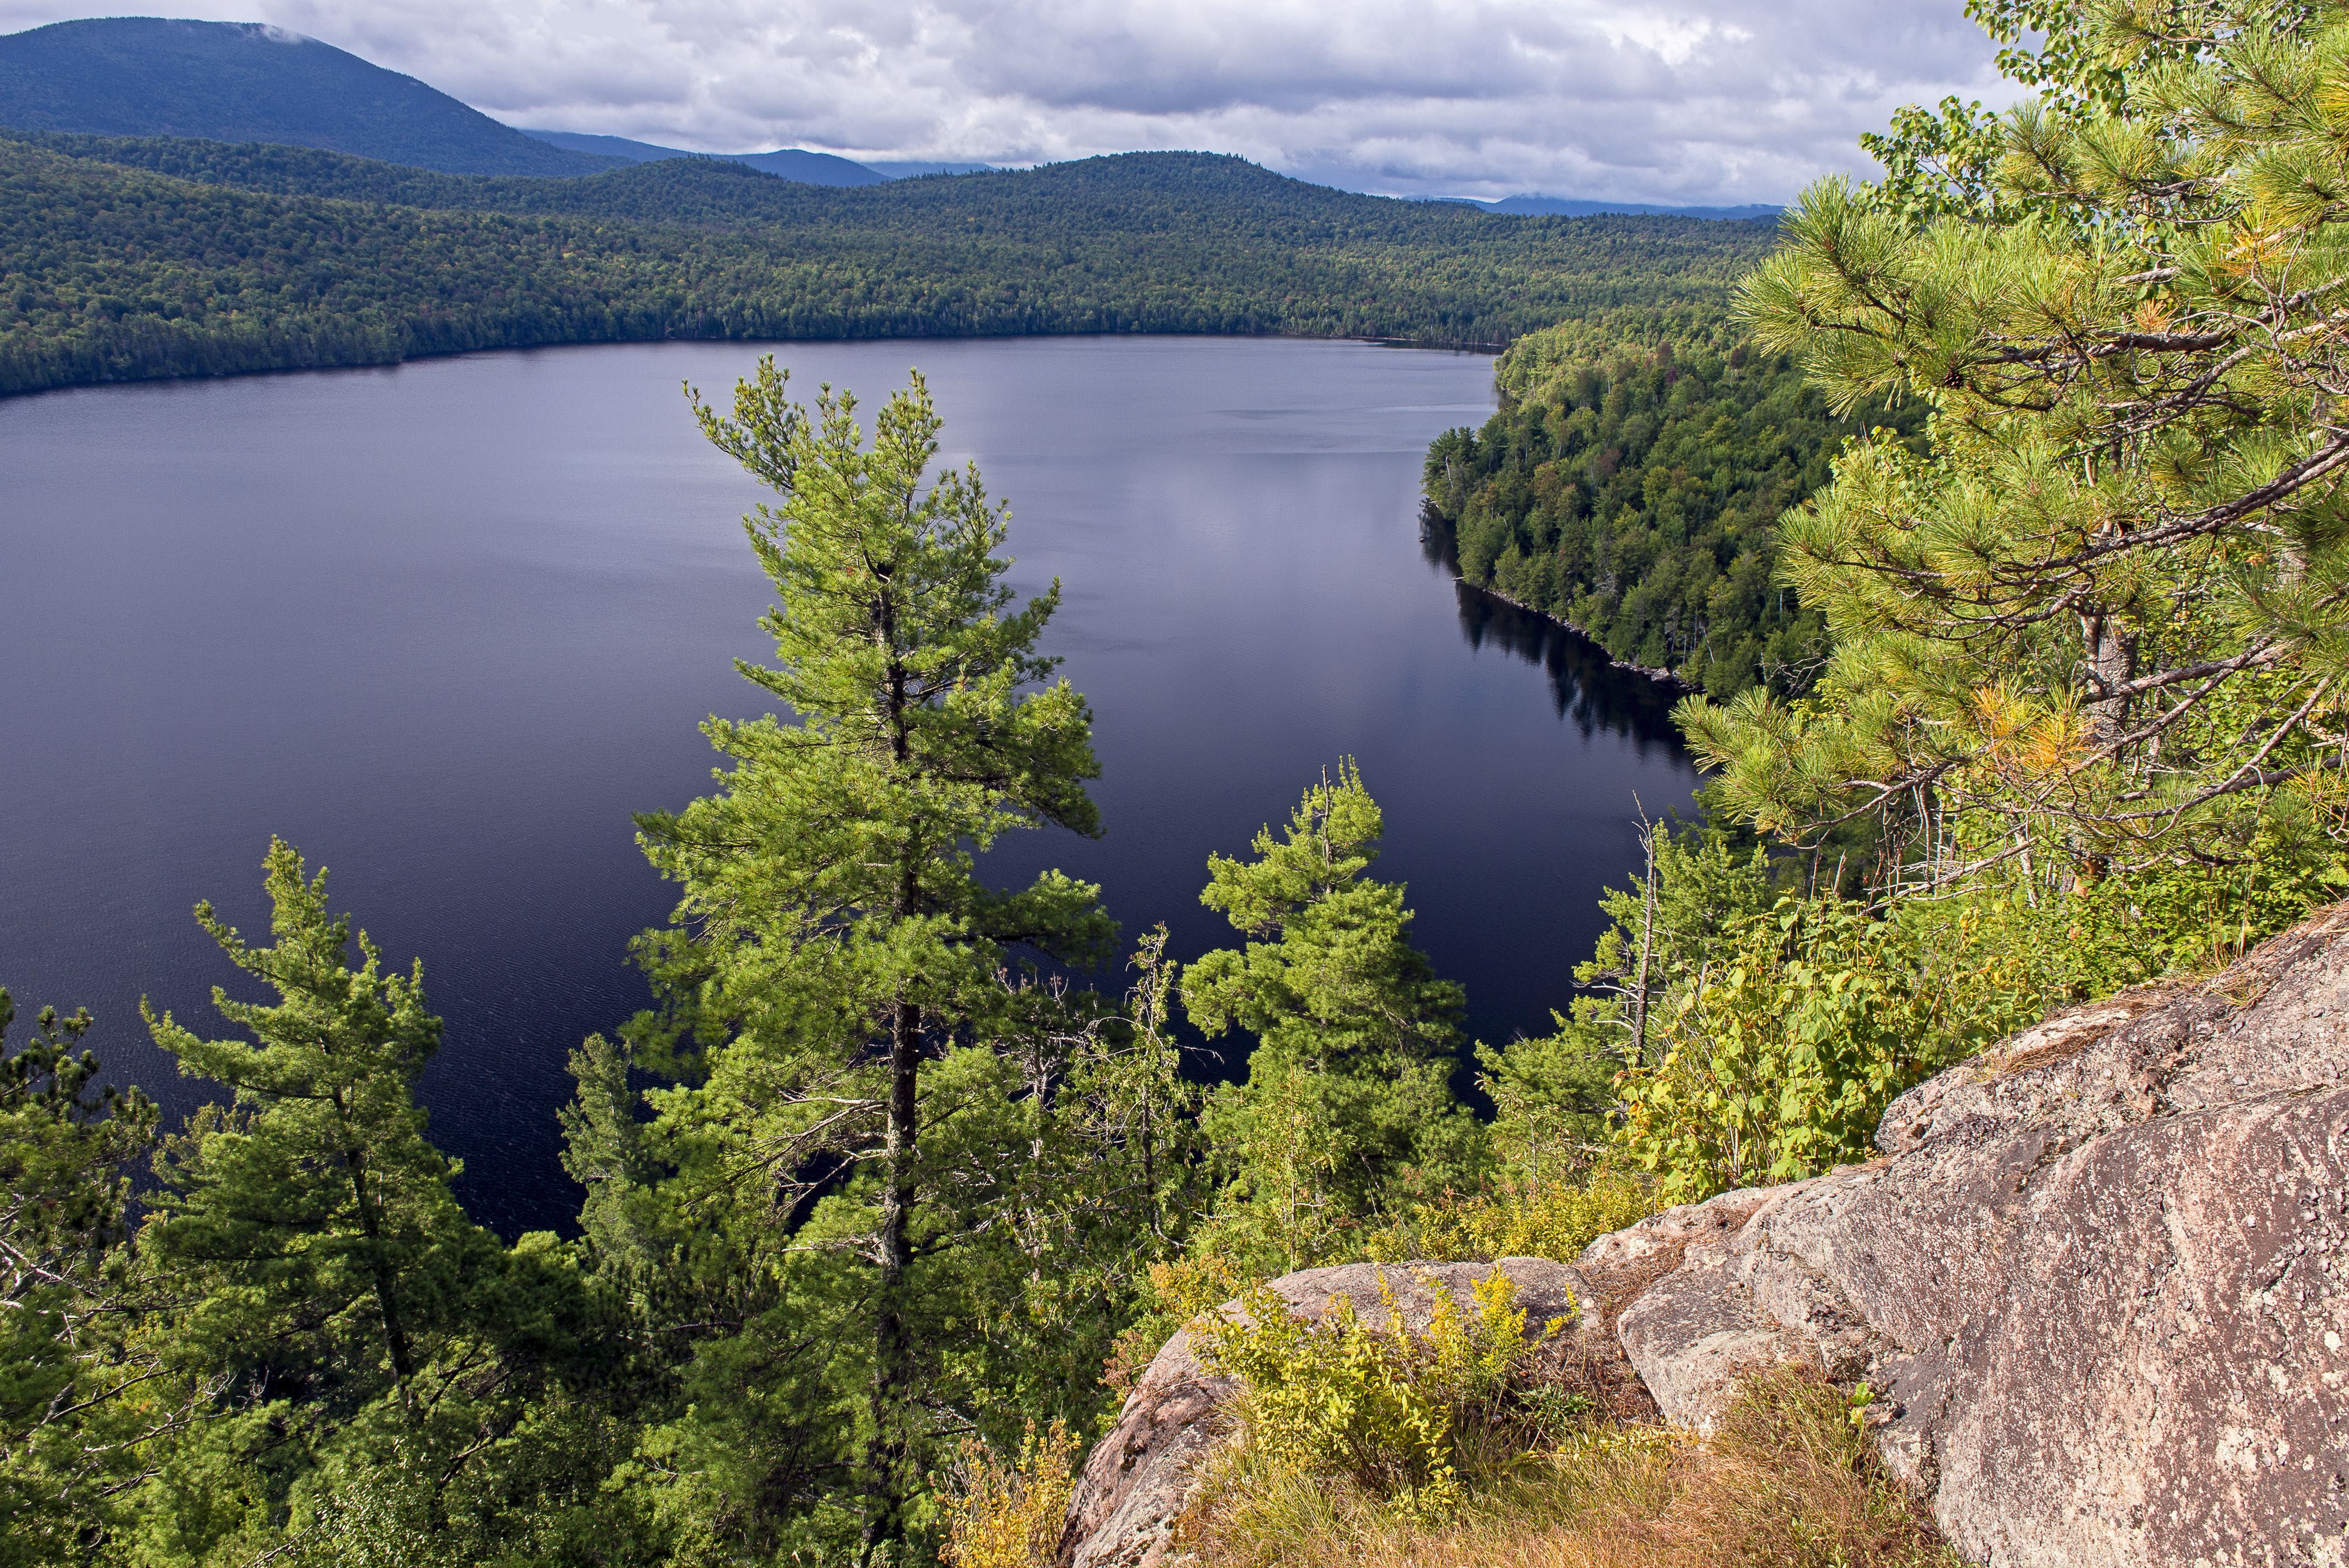 A view from atop a gray boulder on the righthand side of the image looking out onto a blue lake with green trees lining the shore.